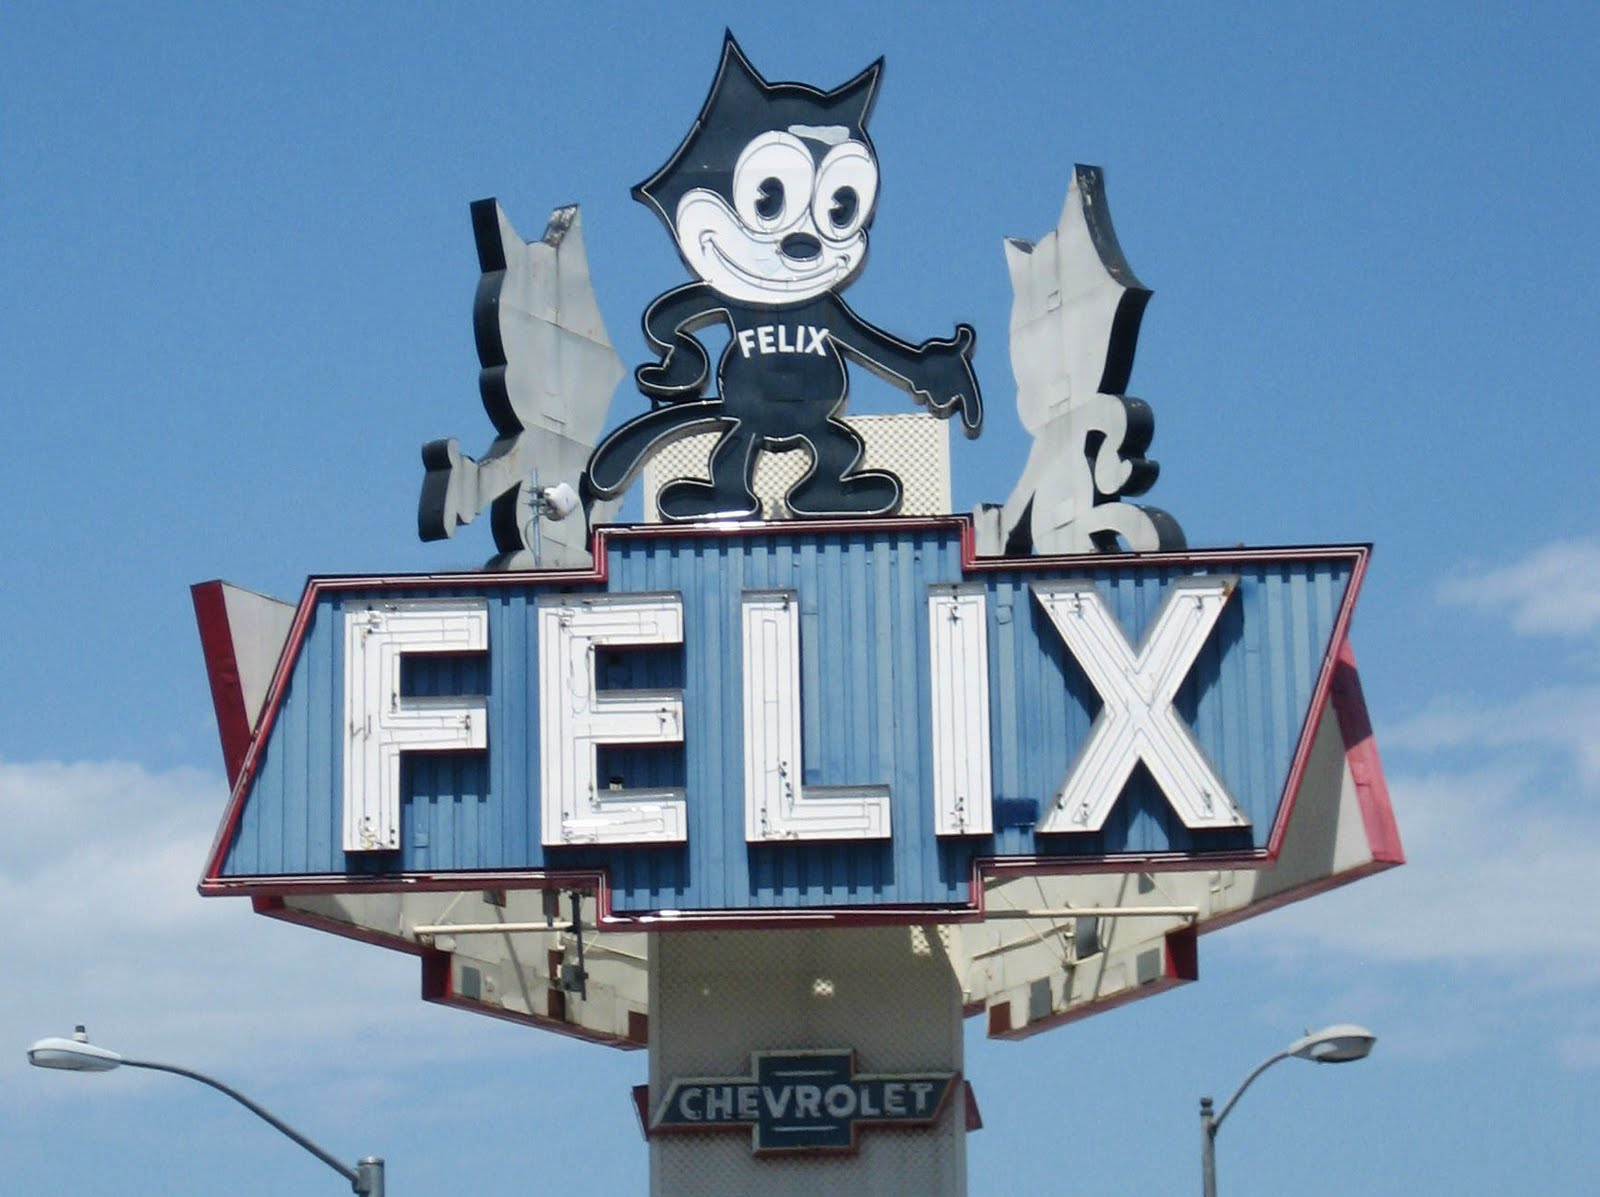 Unlike Most Of L.A.u0027s 1950s Signs, The Felix Chevrolet Sign Is Protected  From Unilateral Demolition Or Alteration Because It Was Designated As A  City Of Los ...